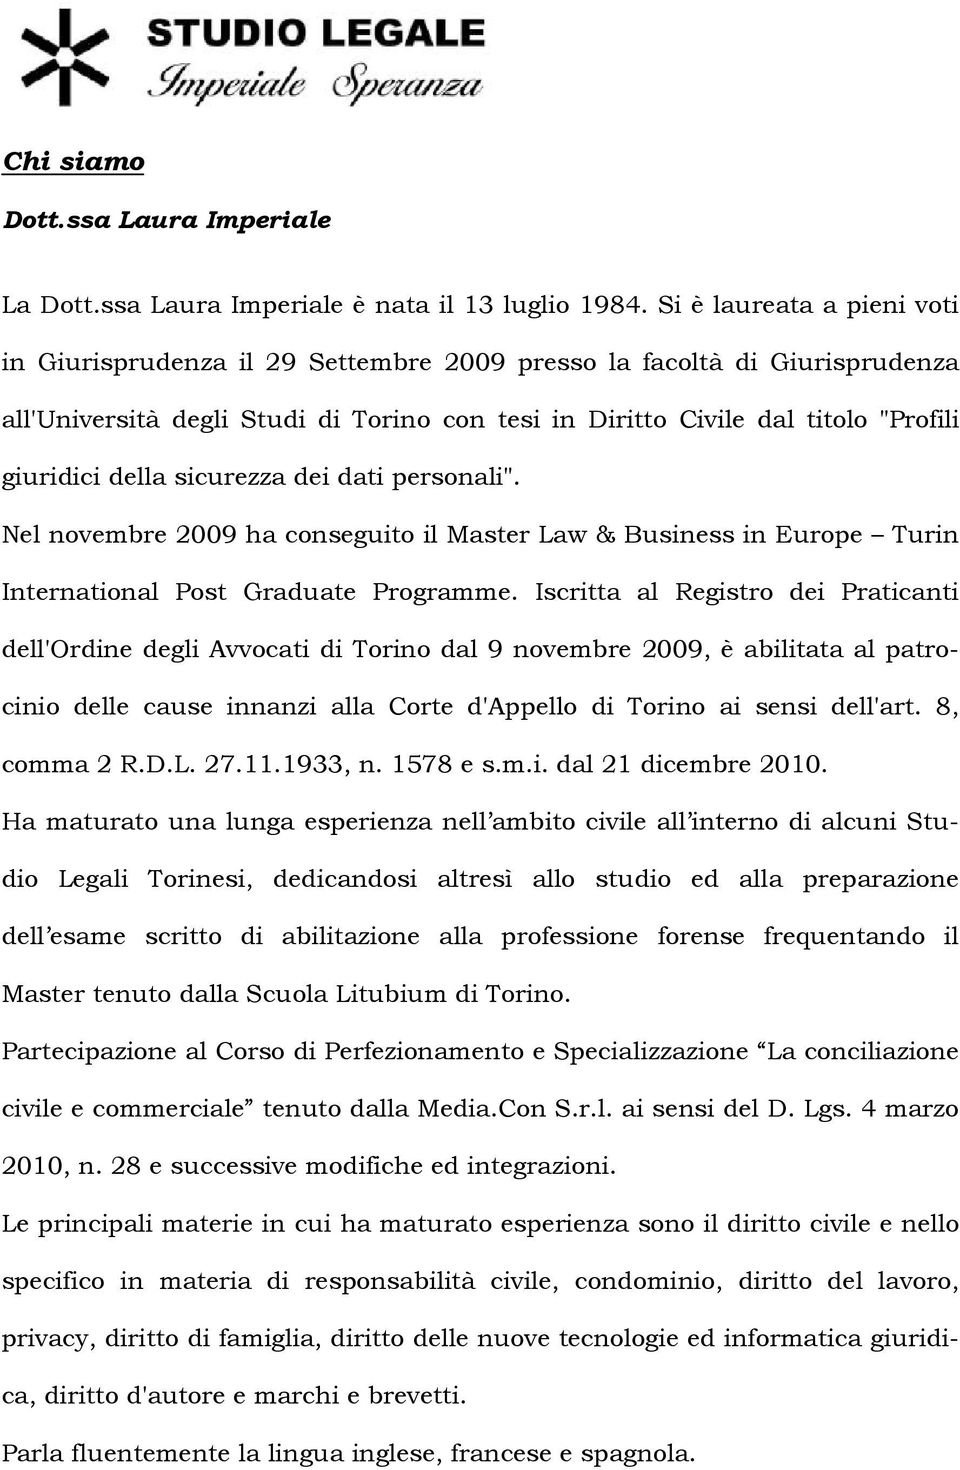 "della sicurezza dei dati personali"". Nel novembre 2009 ha conseguito il Master Law & Business in Europe Turin International Post Graduate Programme."